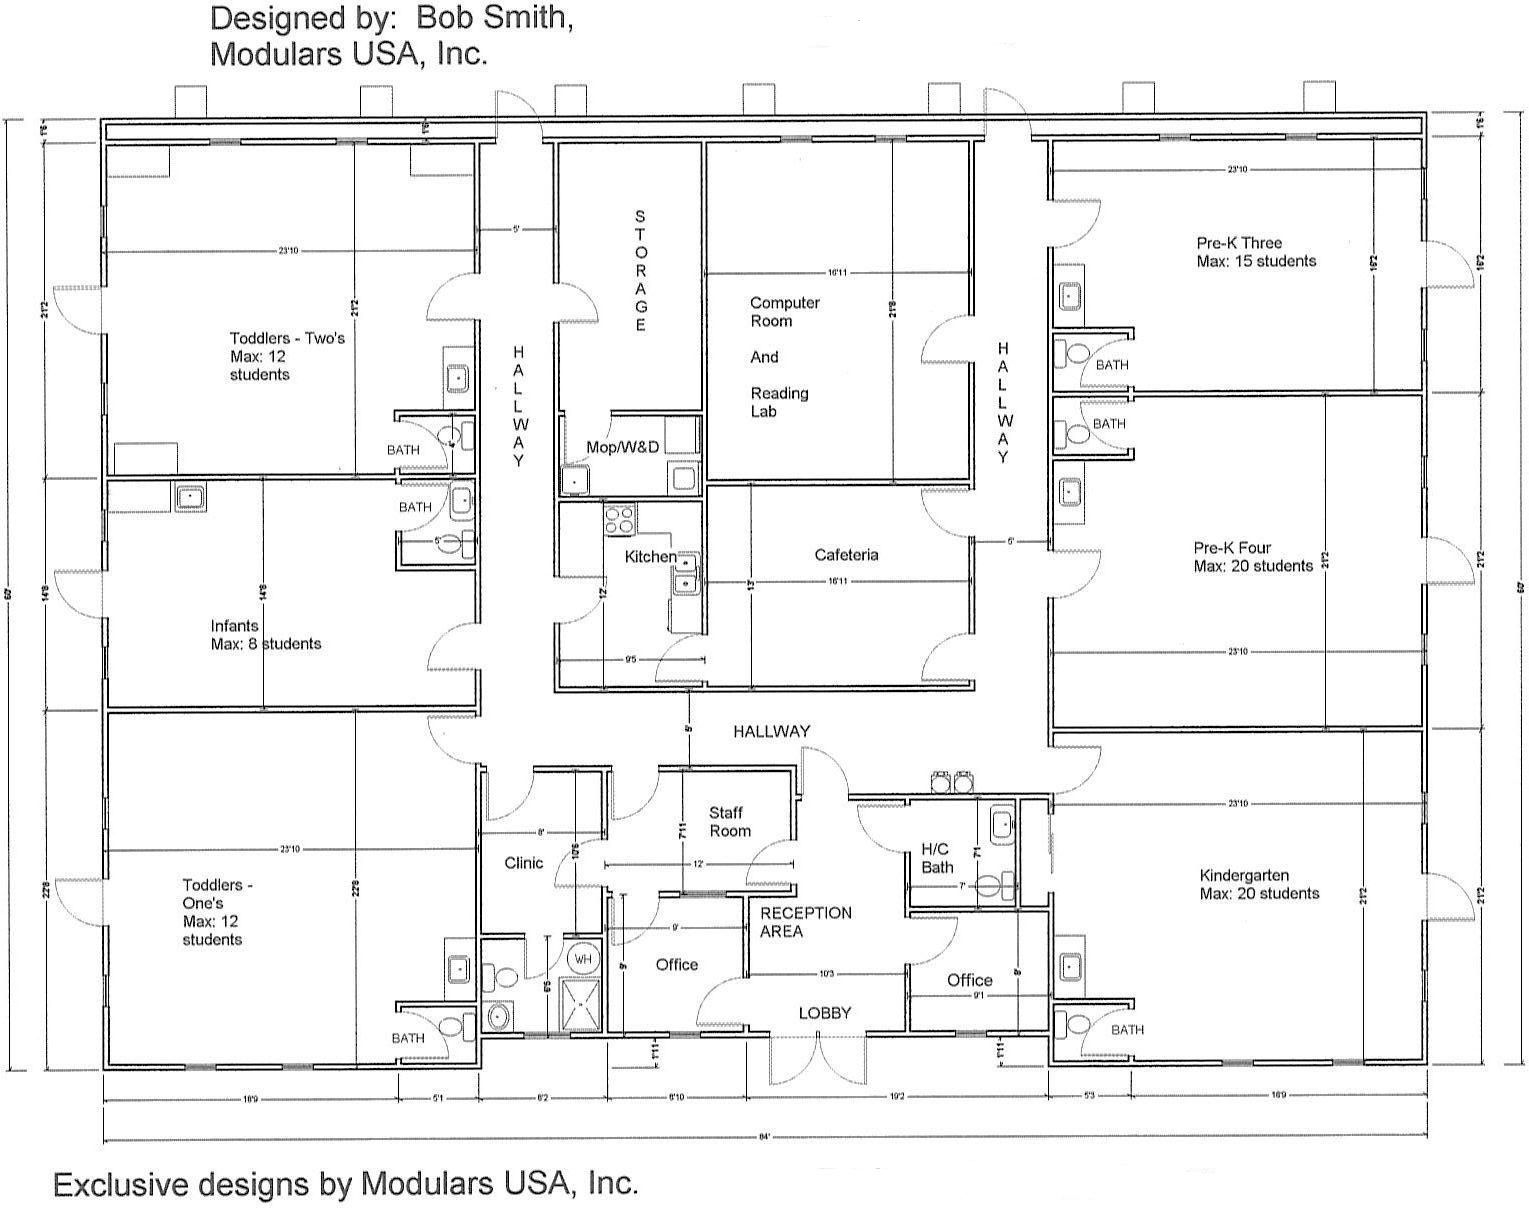 Daycare center blueprints floor plan for mindexpander for Floor plan blueprint